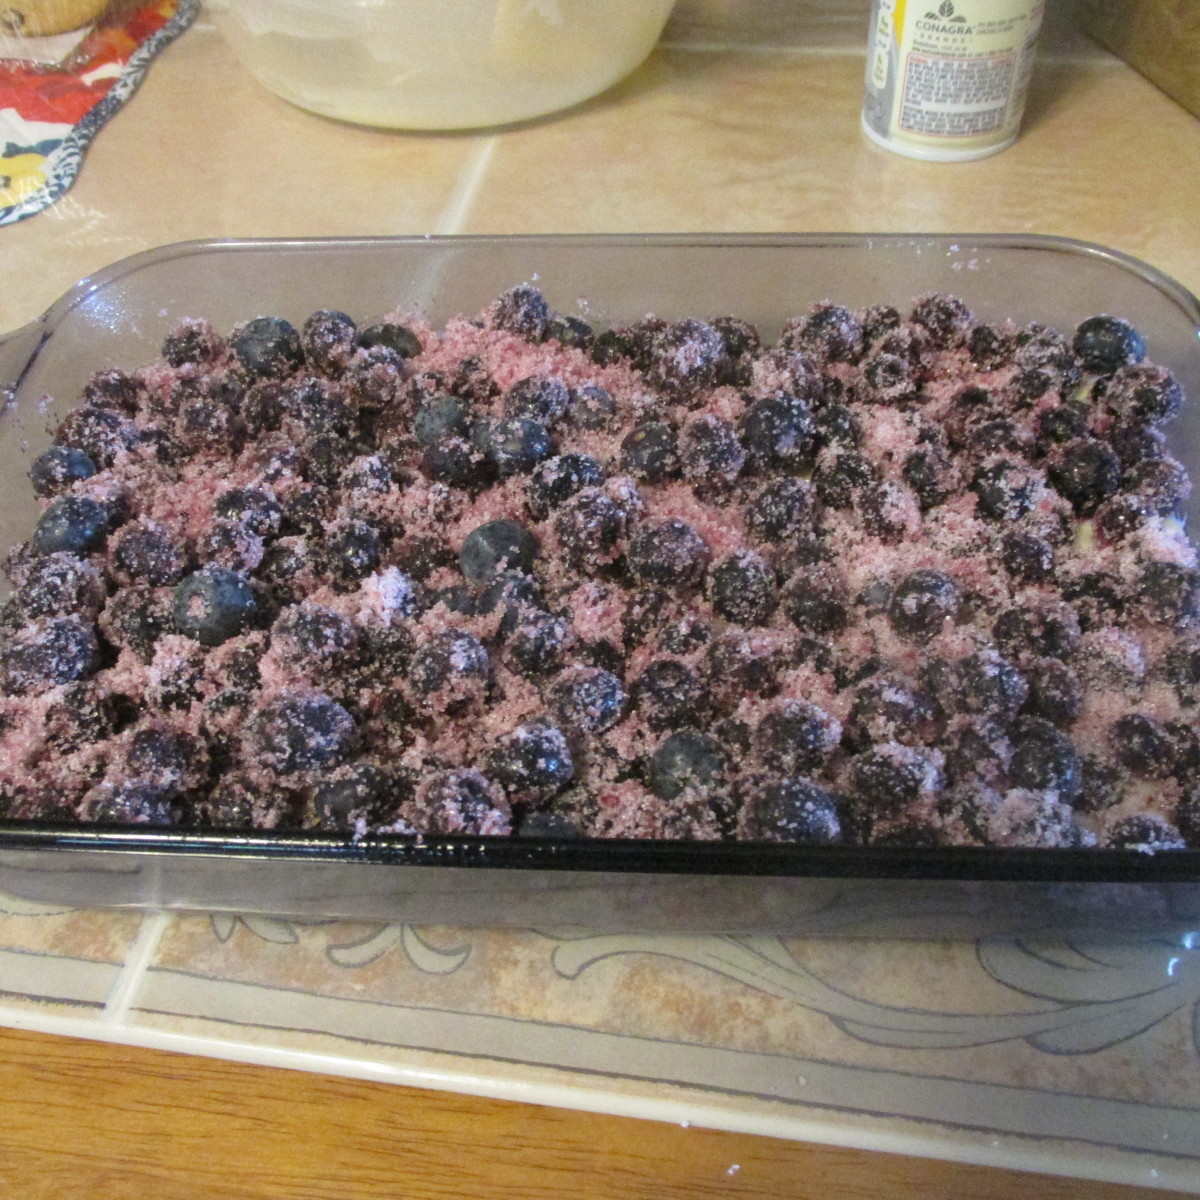 Layer the blueberries on top of the batter.